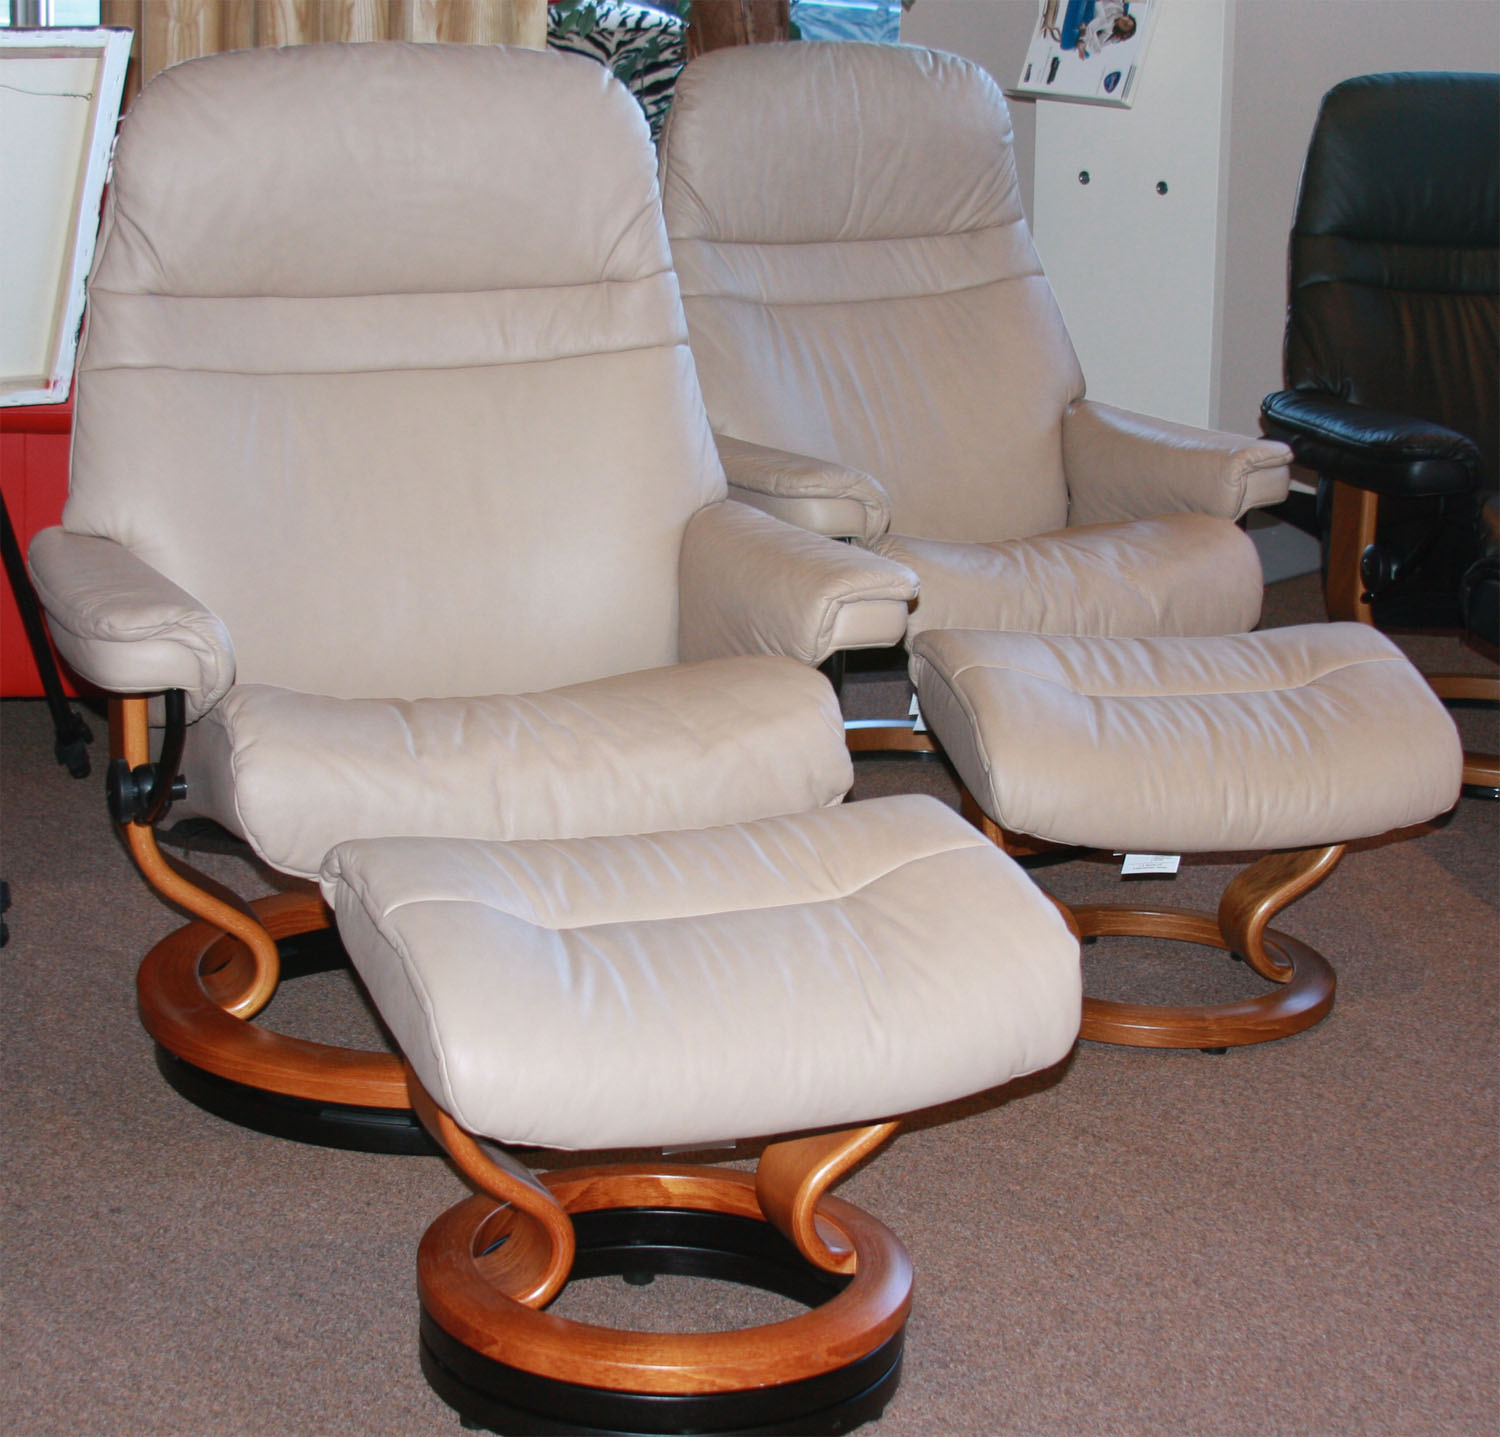 Stressless Sunrise Recliner in Sand Paloma Leather & Stressless Sunrise Recliners Chairs by Ekornes Recliner Lounger ... islam-shia.org